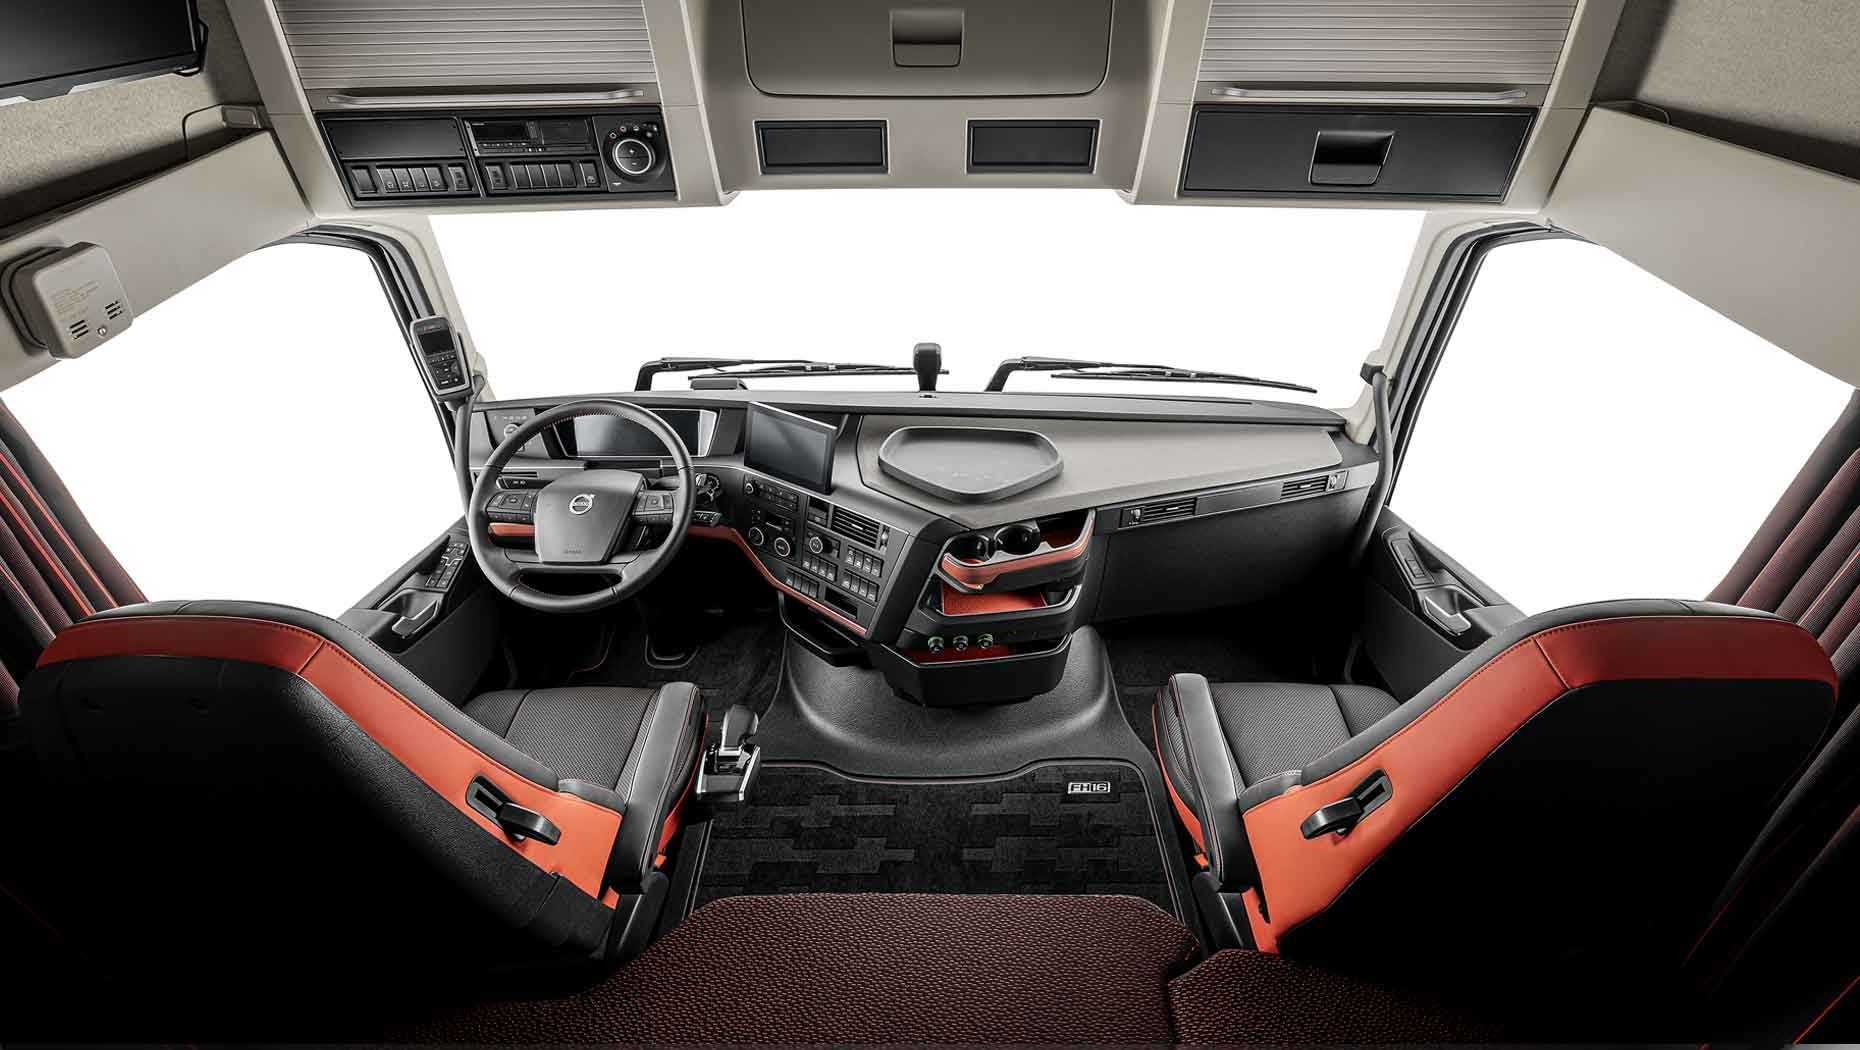 Several improvements, including a new, fully digitalised instrument panel and slimmer I-Shift gear lever feature in the updated cab interior of the Volvo FH and Volvo FH16.